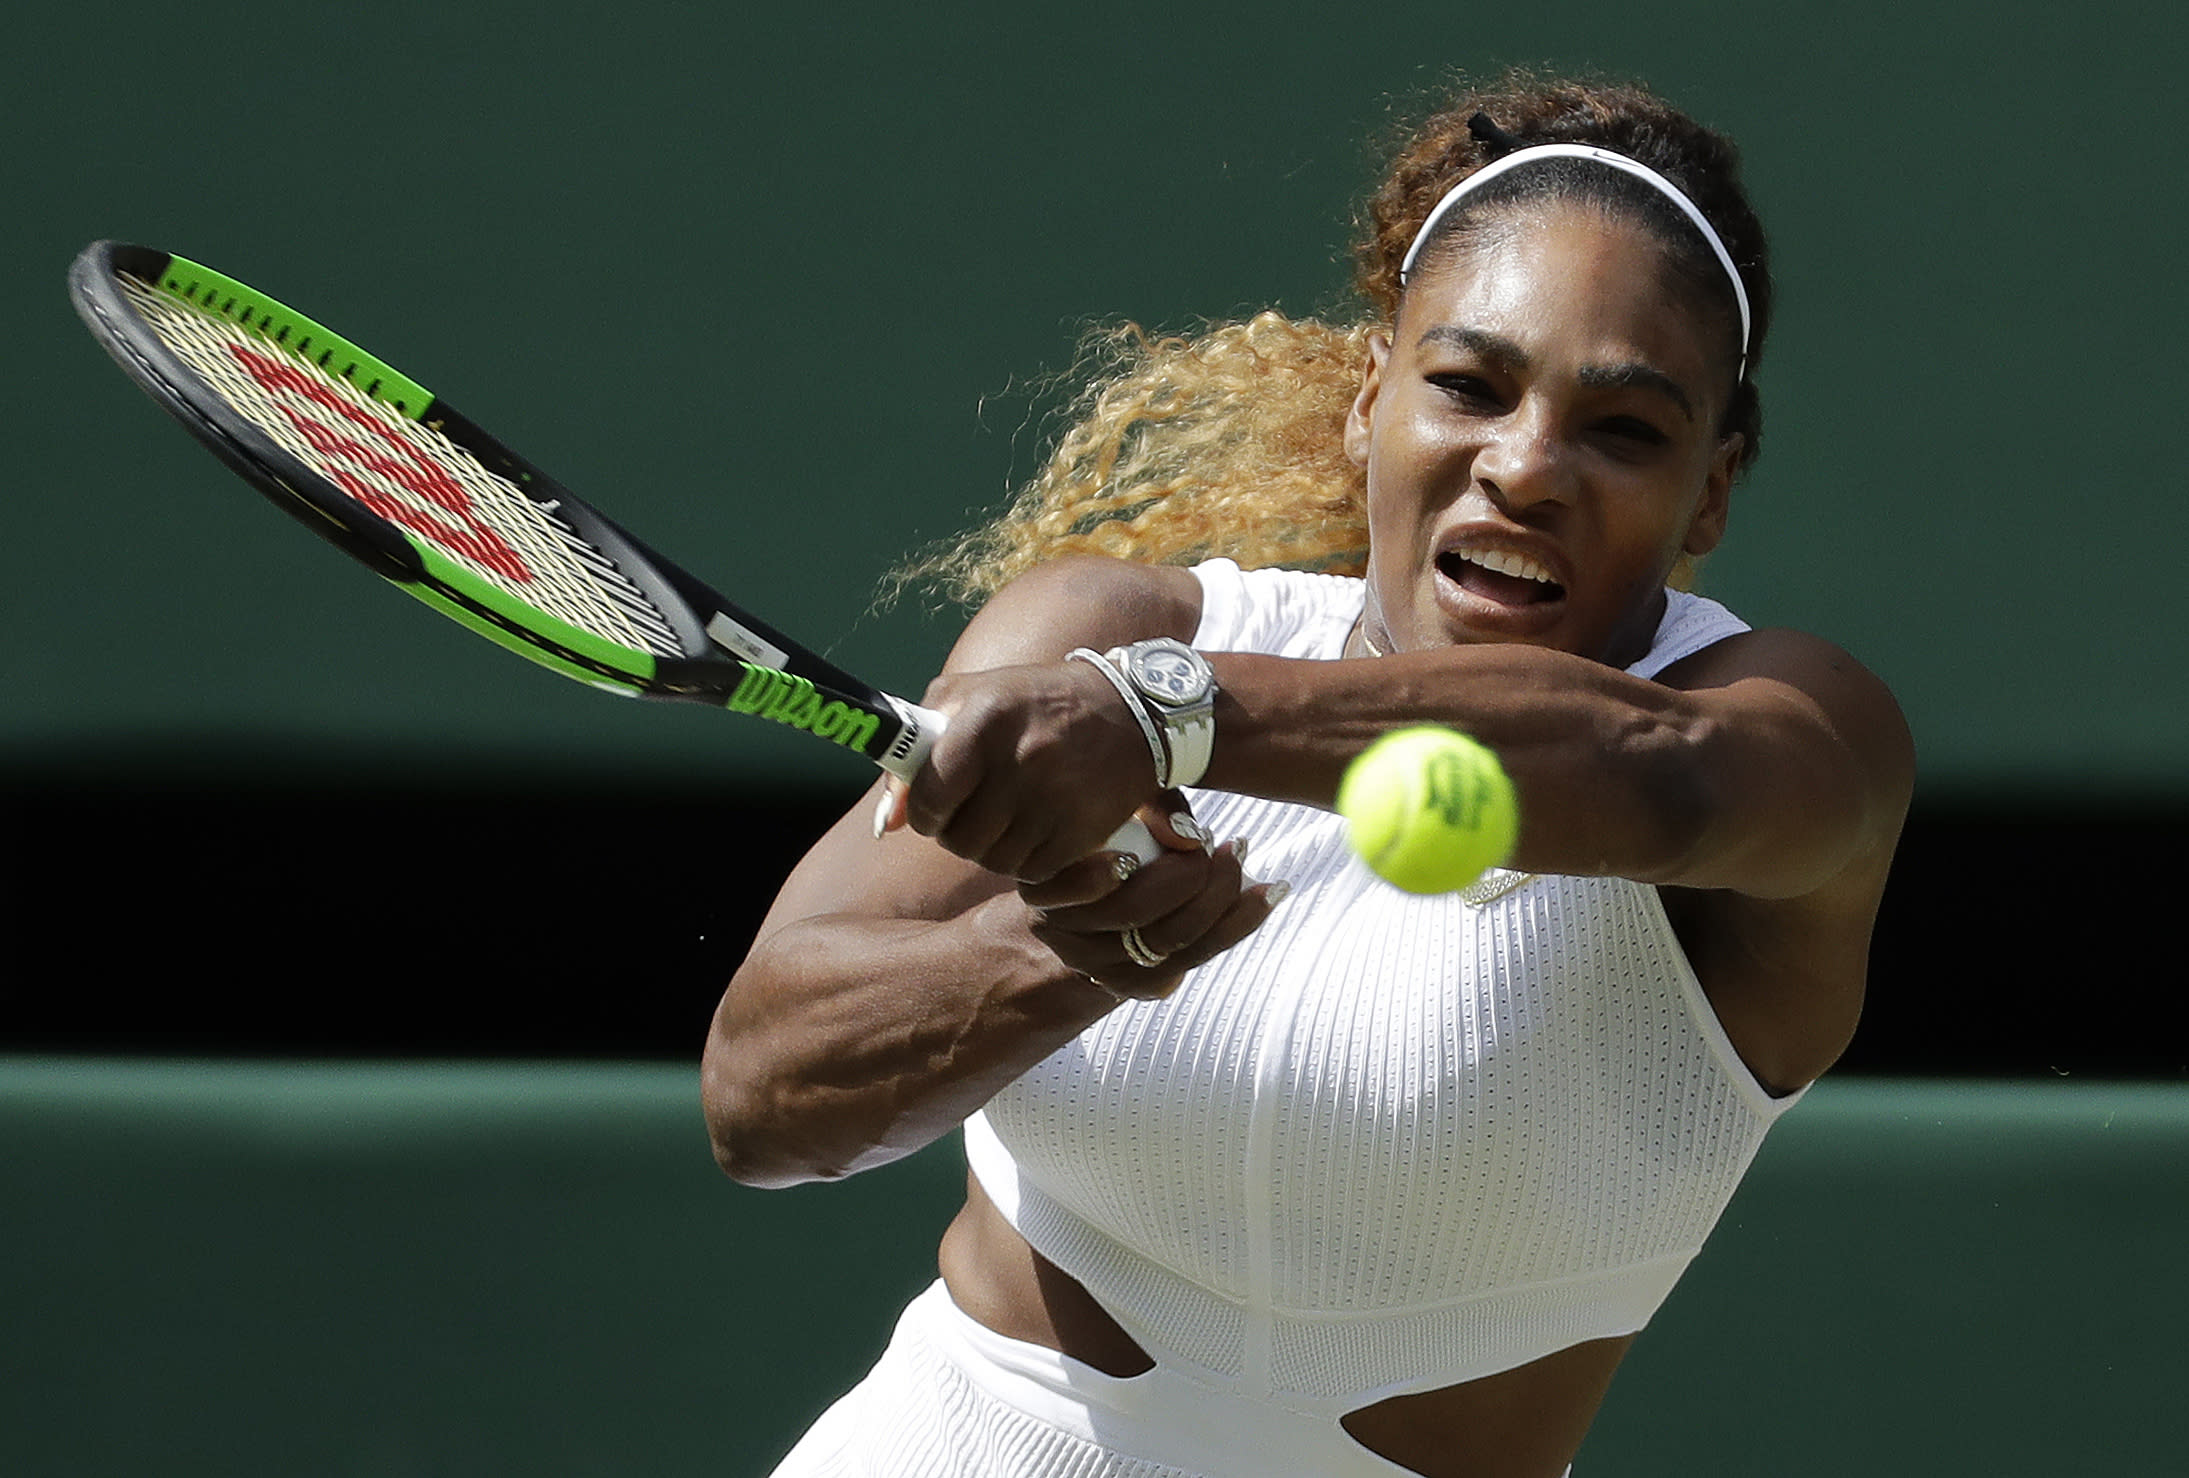 Wimbledon Glance: Serena Williams vs. Simona Halep in final